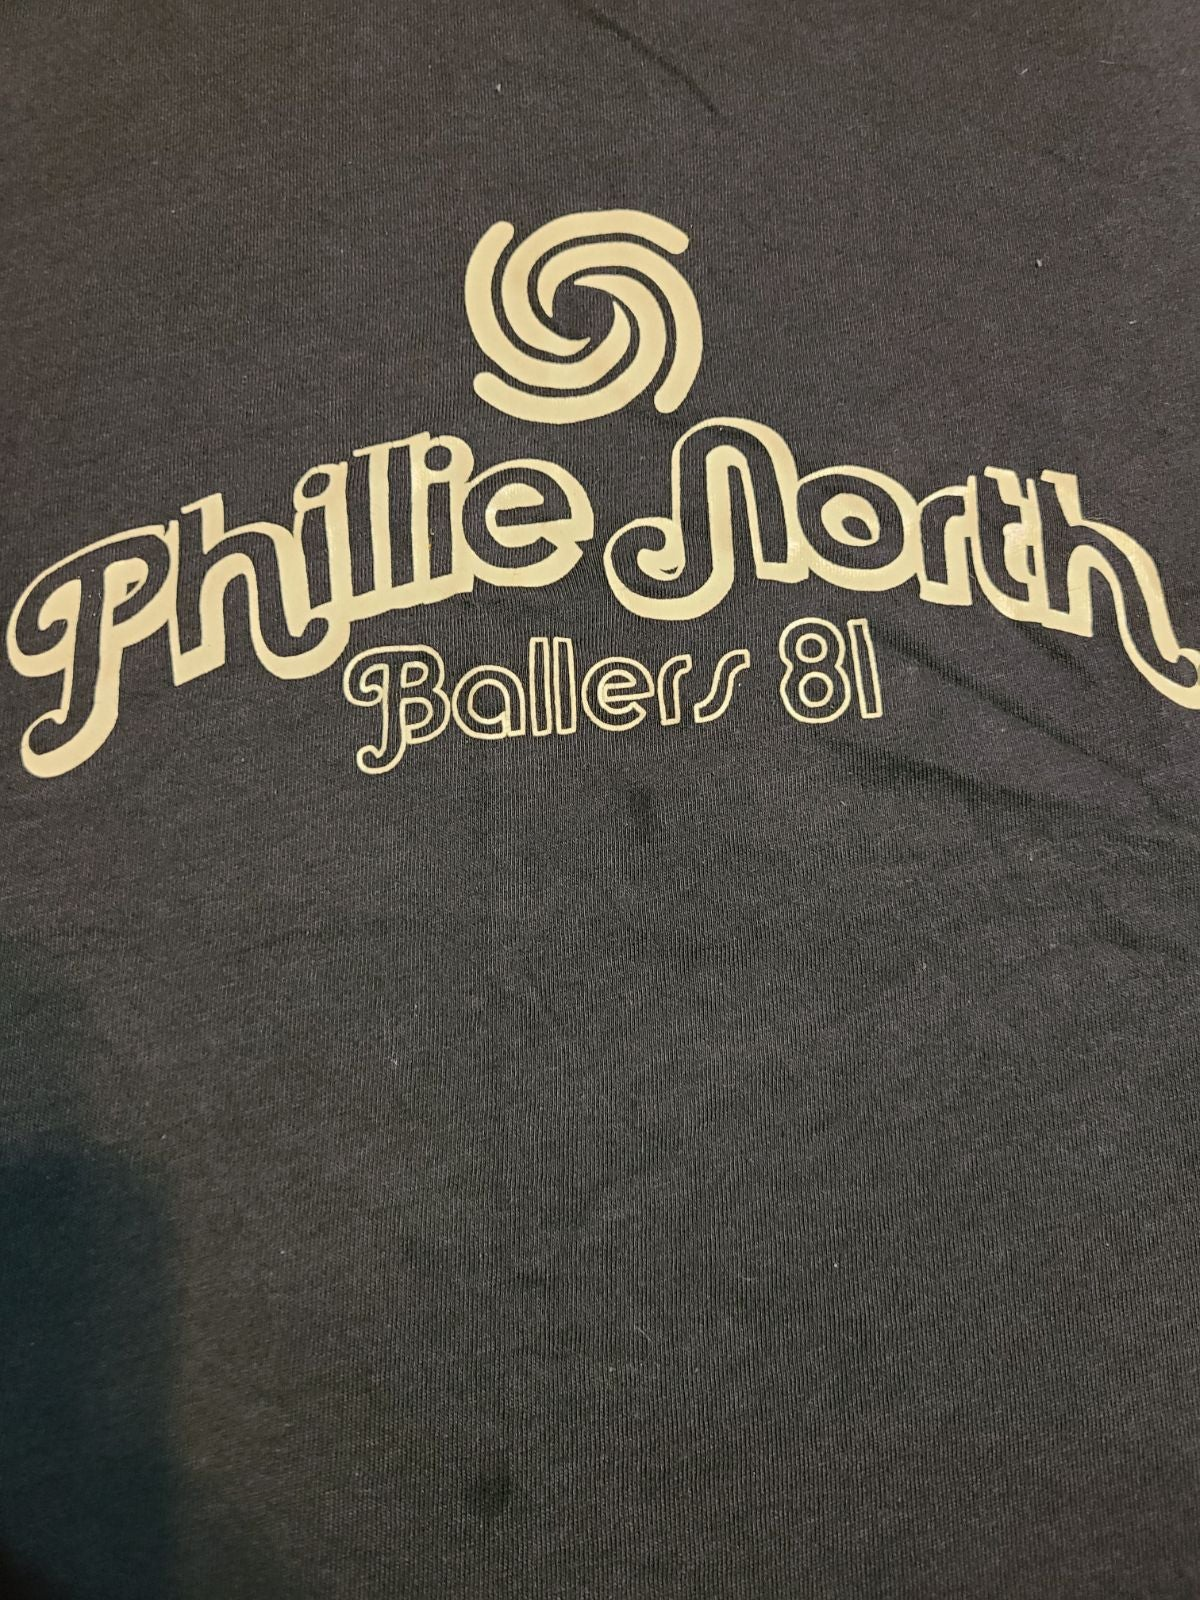 Phillies north  ballers 81 .old navy shi